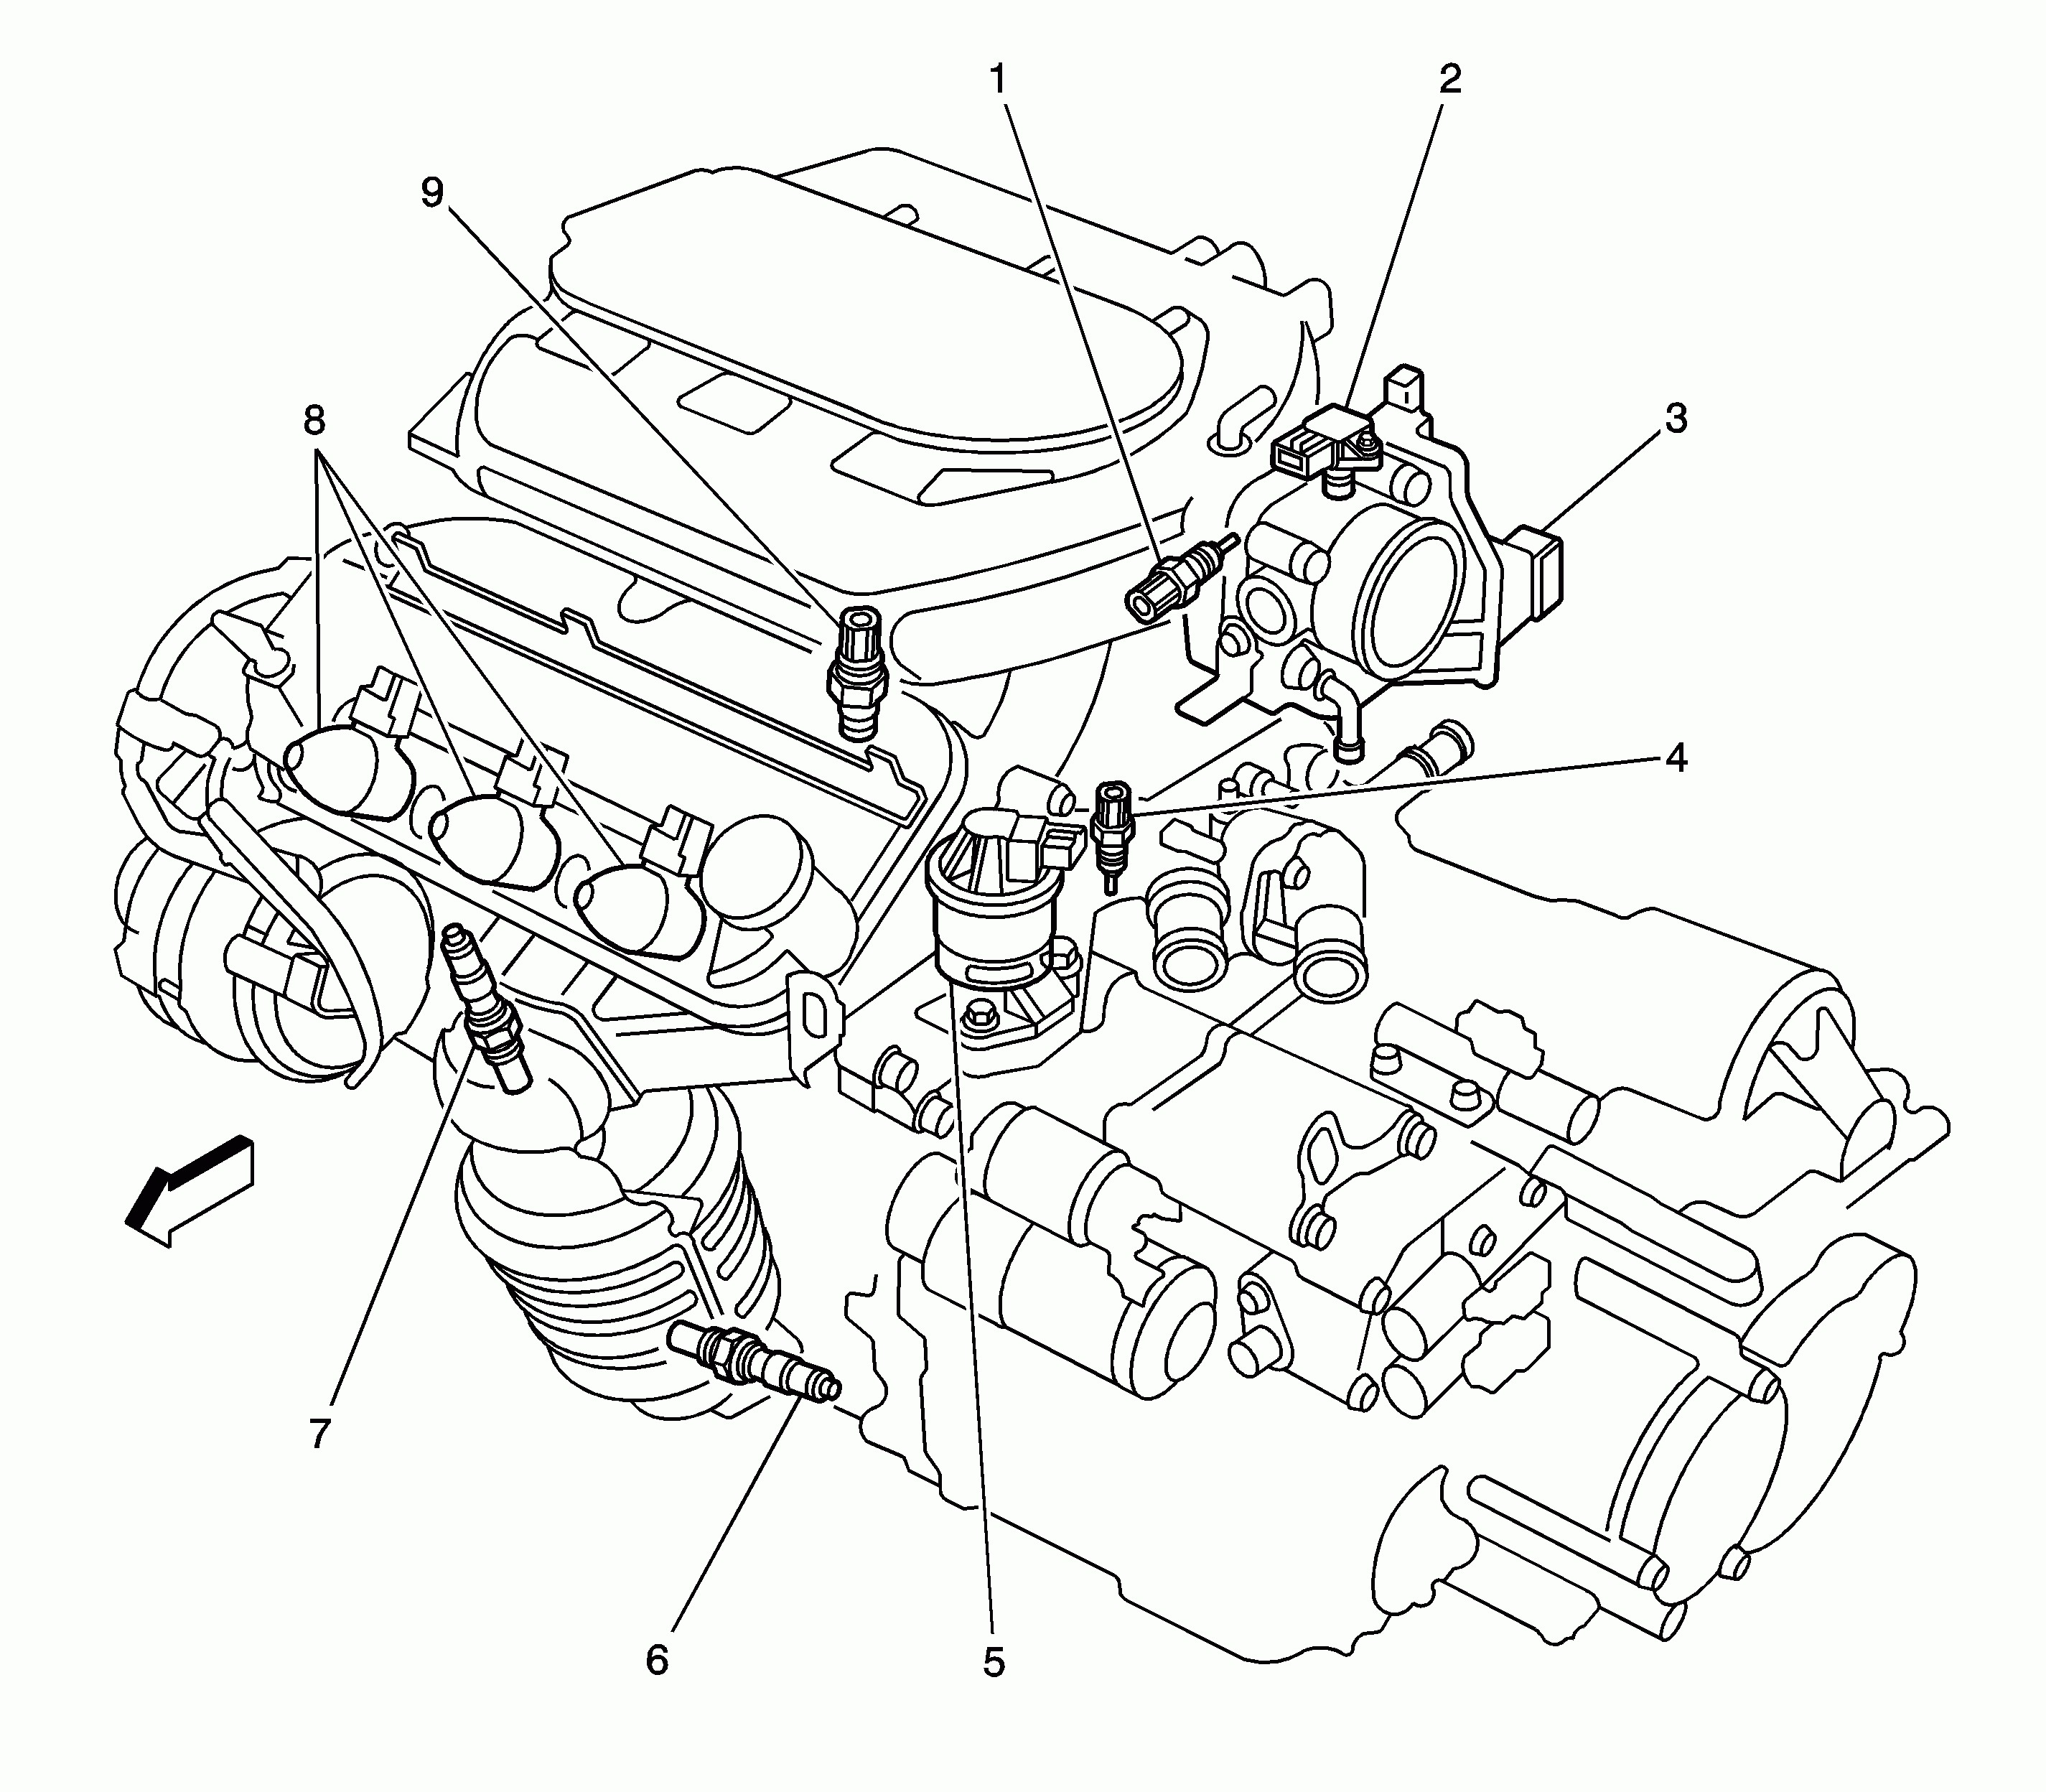 vr6 engine wiring diagram wiring auto wiring diagrams instructions rh netbazar co VW VR6 Turbo Engine VW VR6 Engine Block